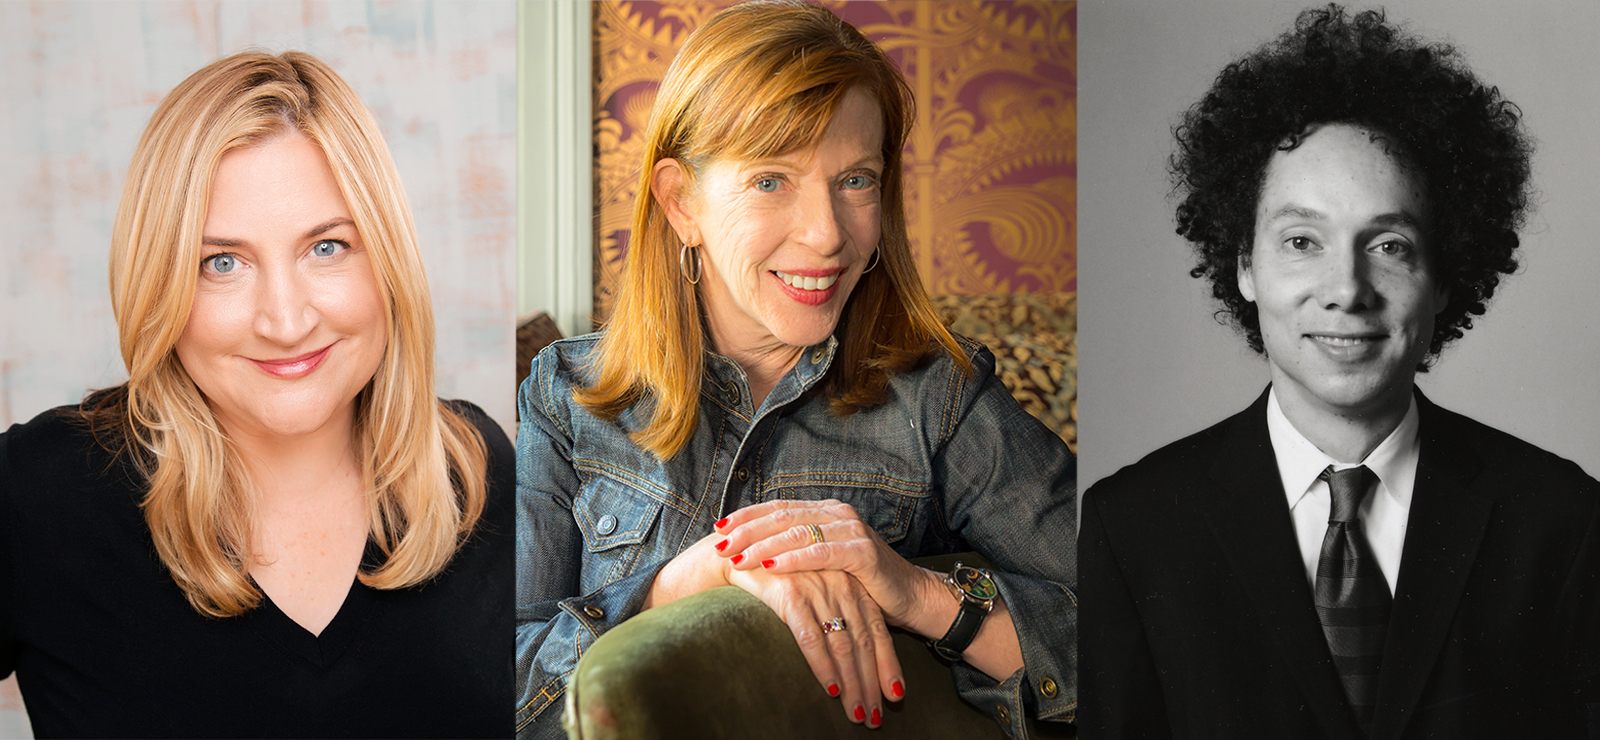 [Susan Orlean and Sarah Thyre's CrybabiesA live podcast with Malcolm Gladwell] Susan Orlean by Noah Fecks; Malcolm Gladwell by Brooke Williams; Sarah Thyre by Mindy Tucker